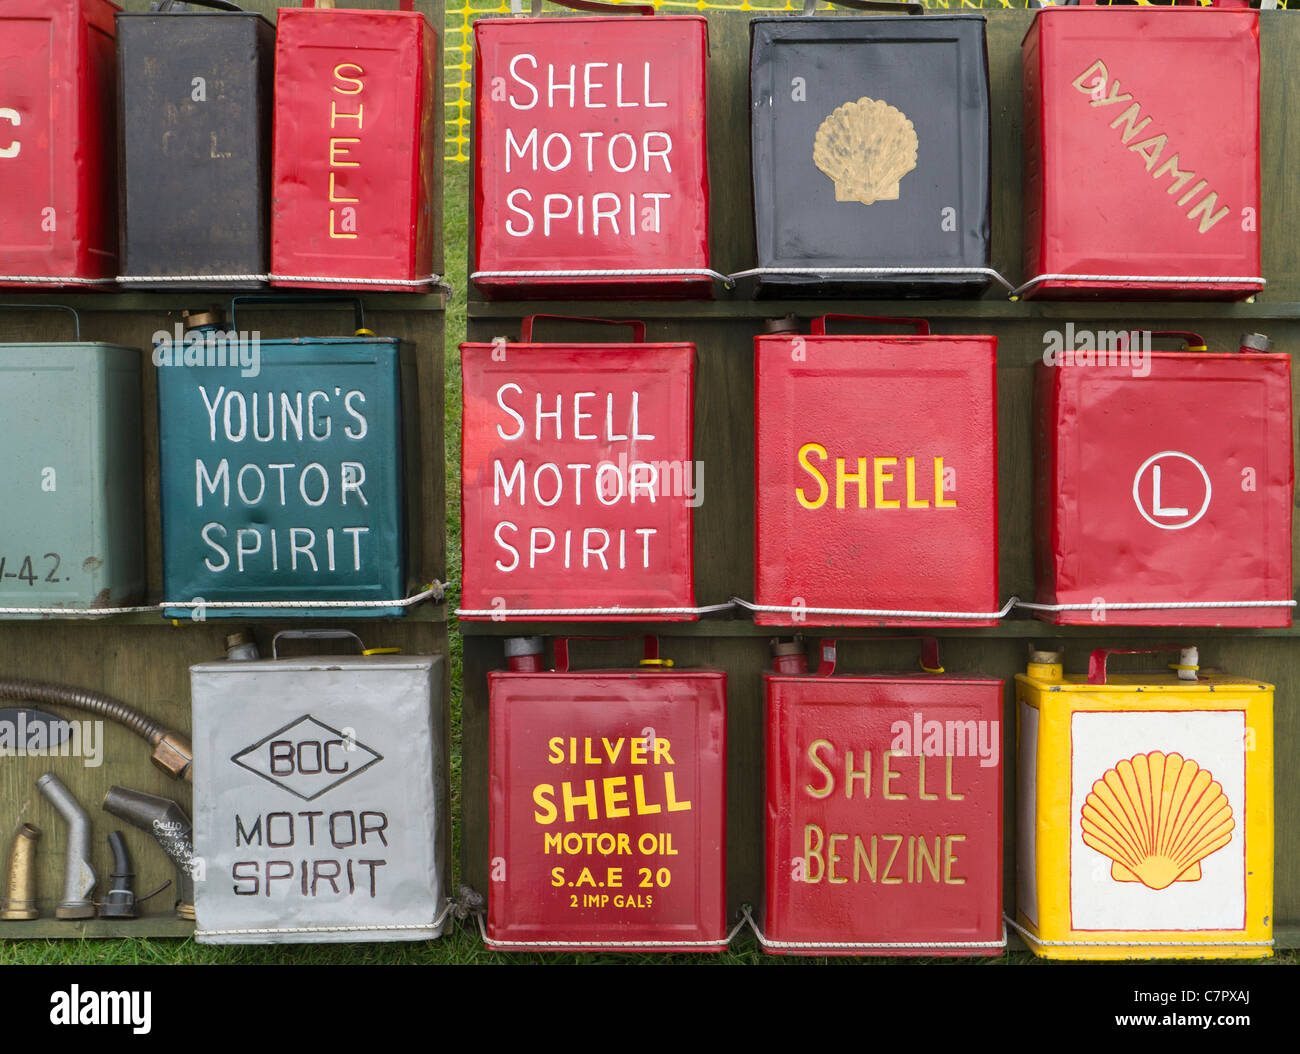 Motor Oil Cans Stock Photos & Motor Oil Cans Stock Images